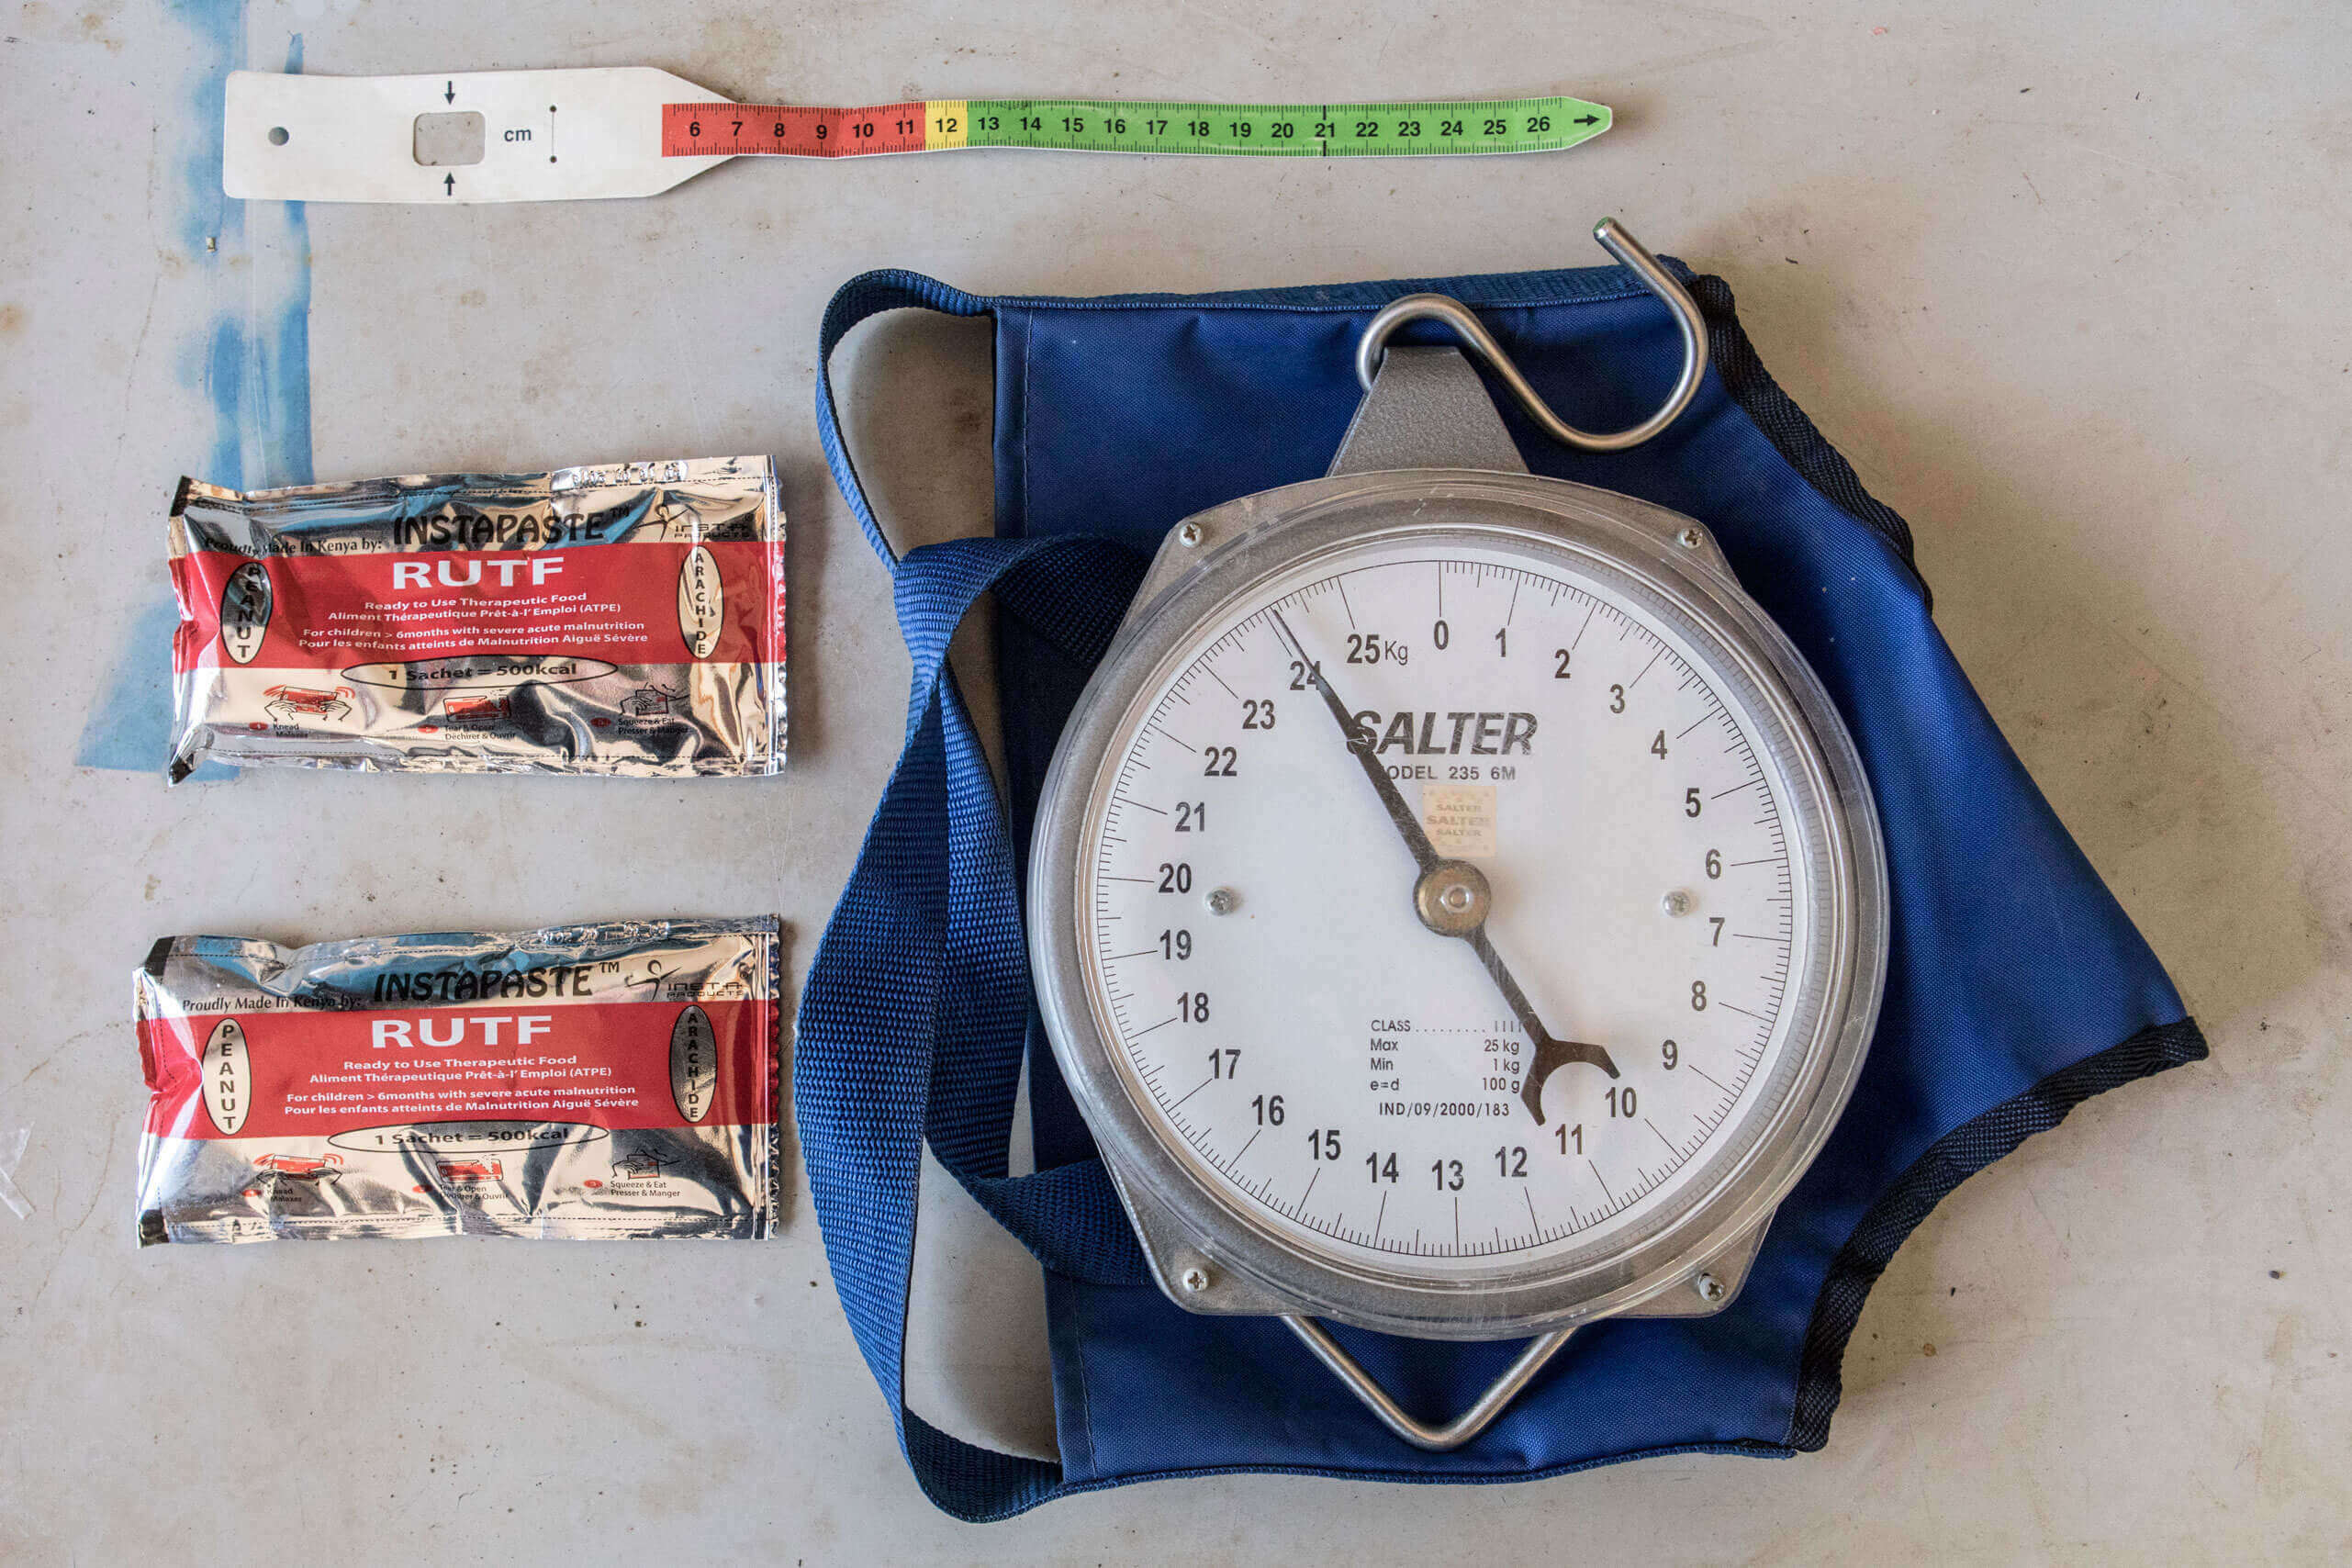 MUAC arm band (top), Ready to Use Theraputic Food/RUTF (left), child weighting scales (right). Kapoeta County, South Sudan.